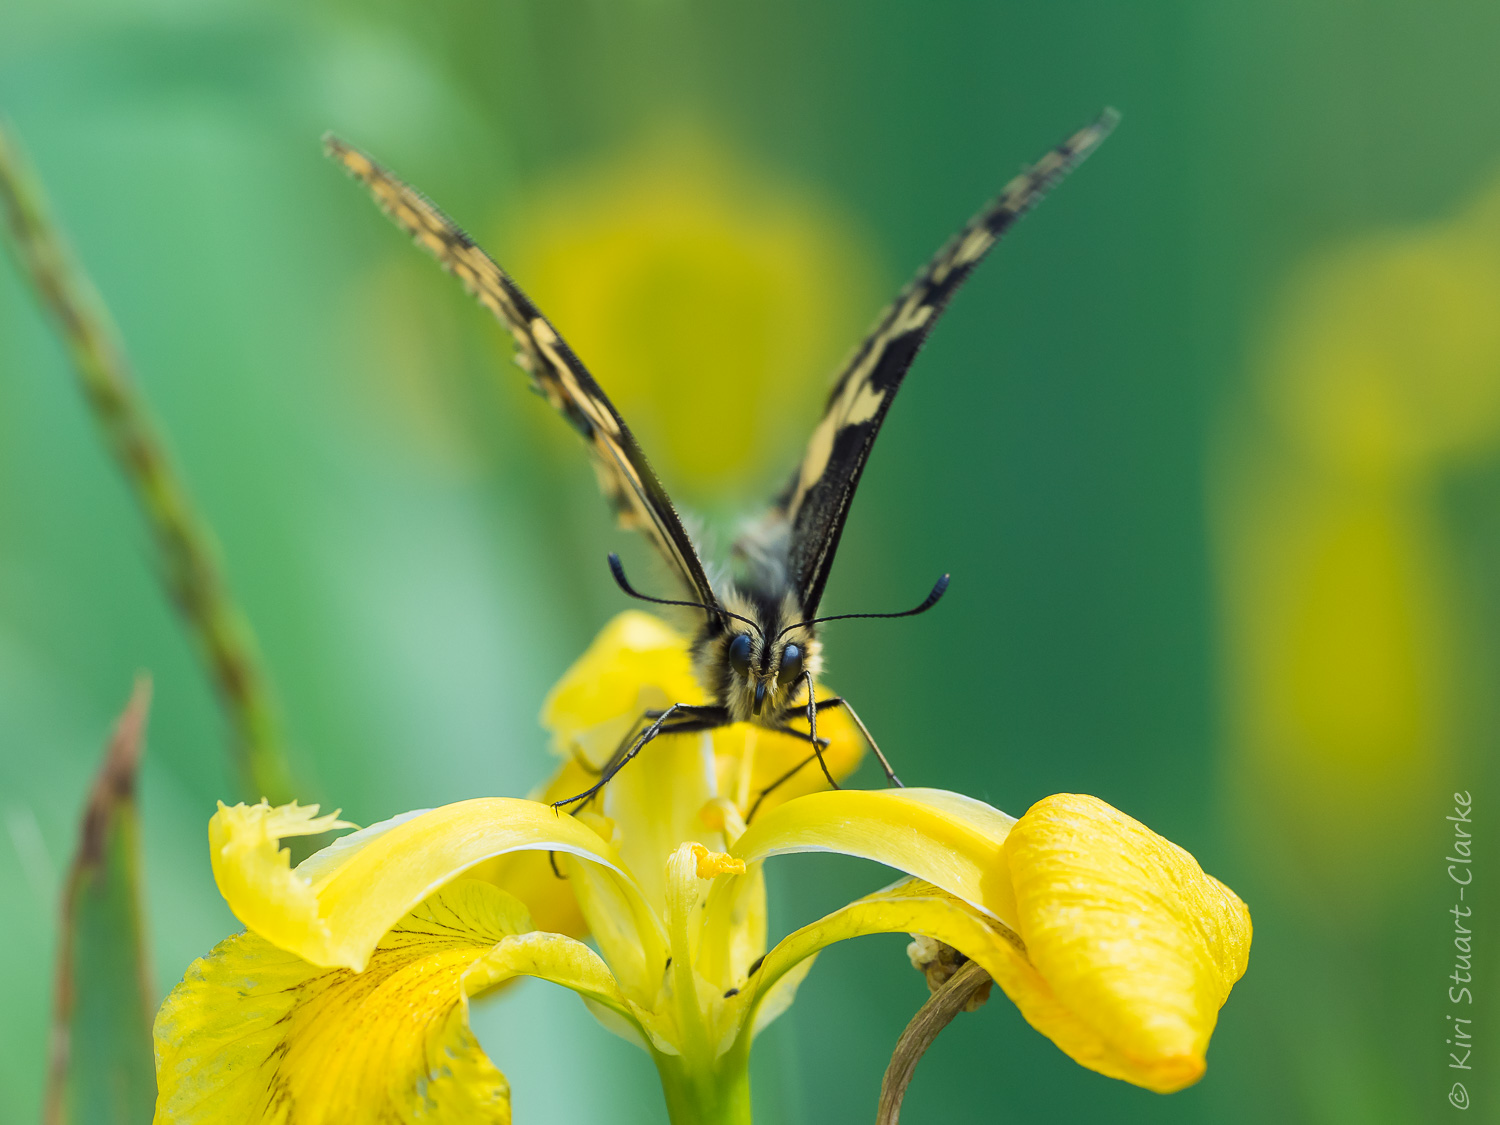 Taking off from a yellow flag iris flower, the British Swallowtail butterfly has been fully protected in UK law since 1992.